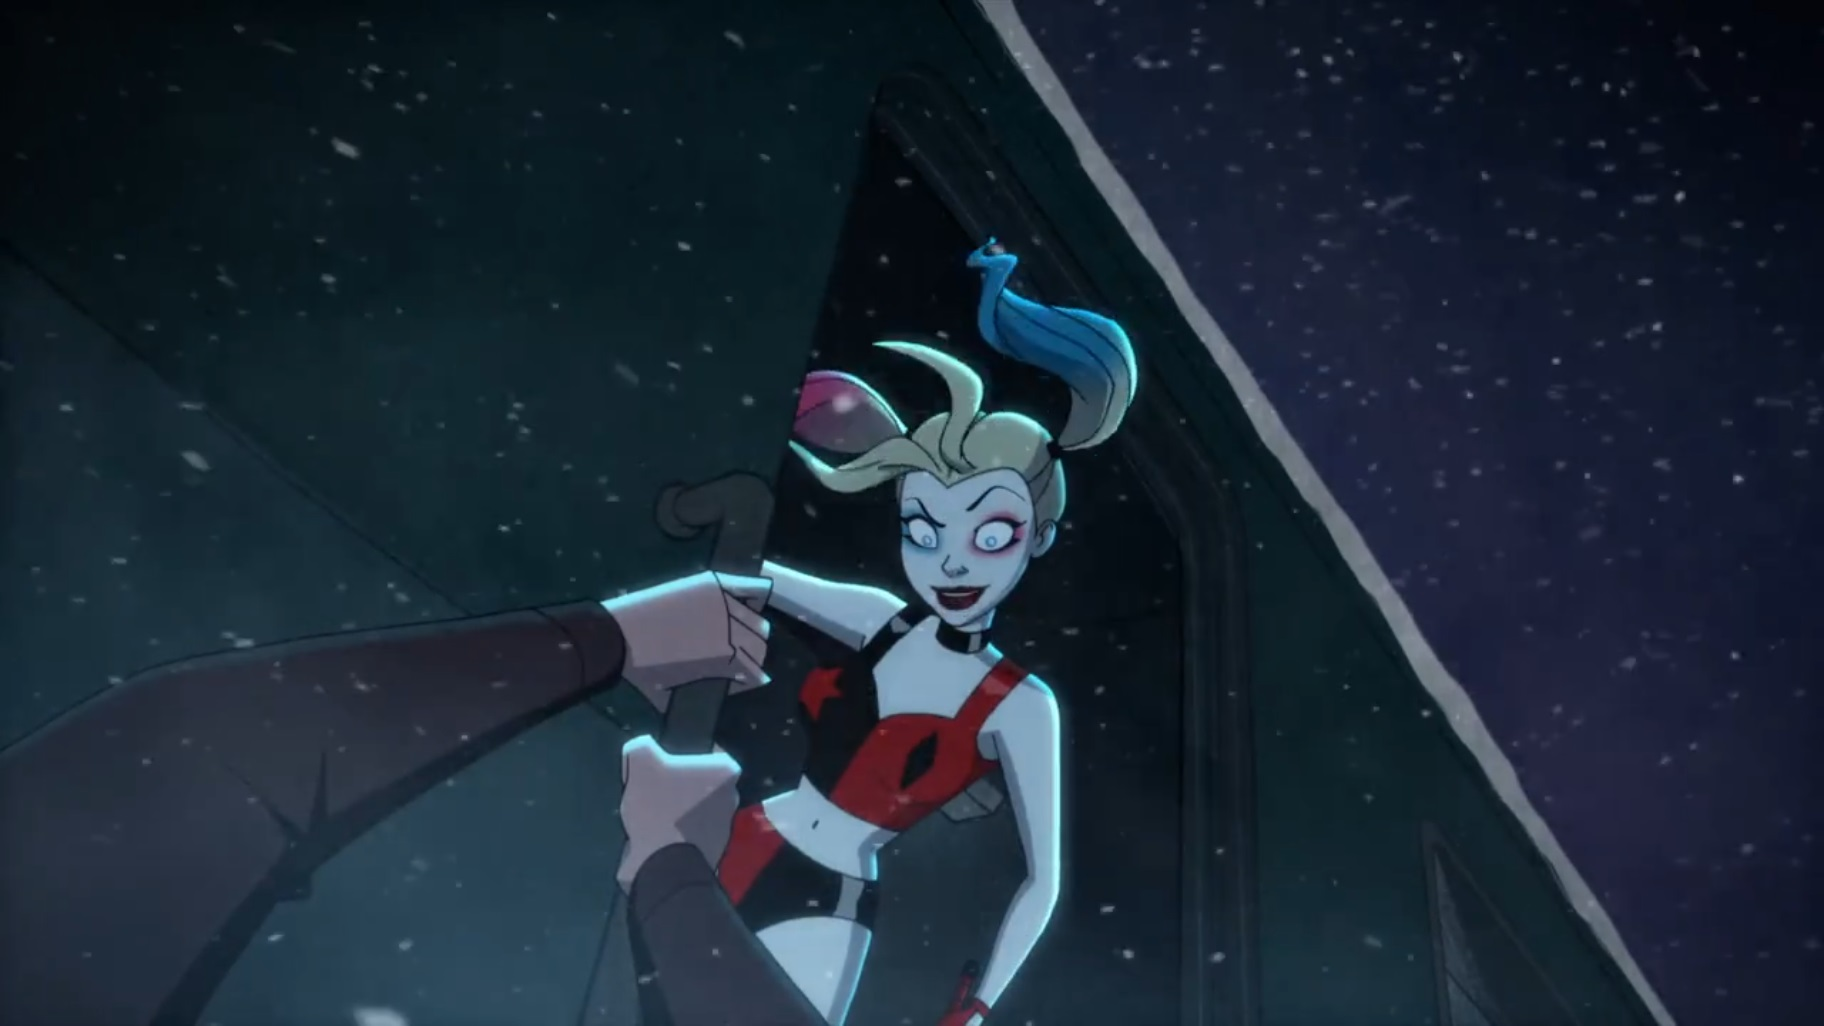 Harley Quinn – T01E03 – So You Need a Crew? [Sub. Español]